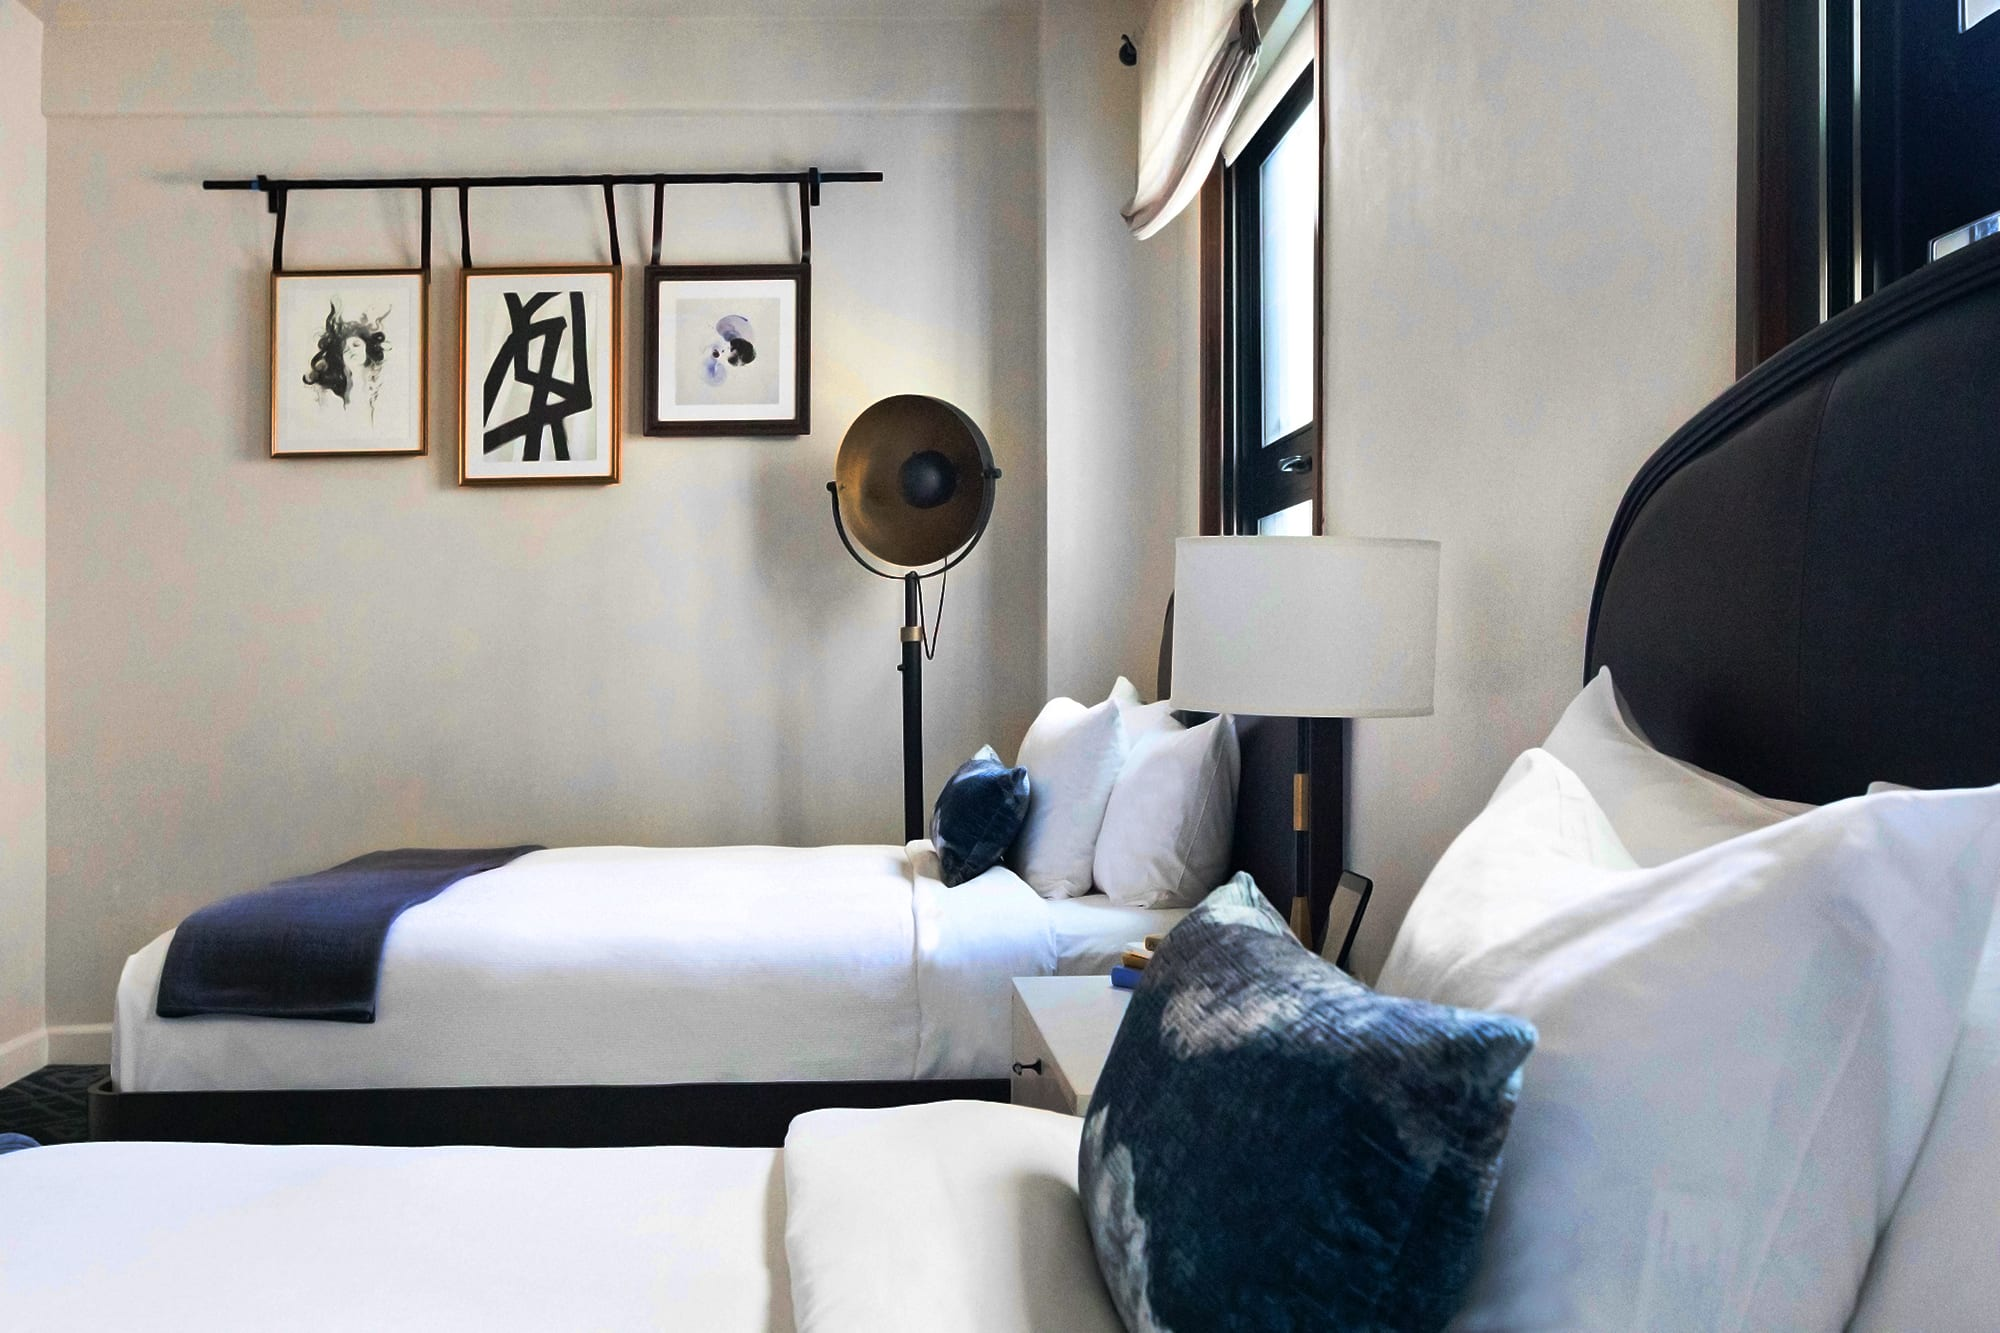 Double bed room with pillow and lamp